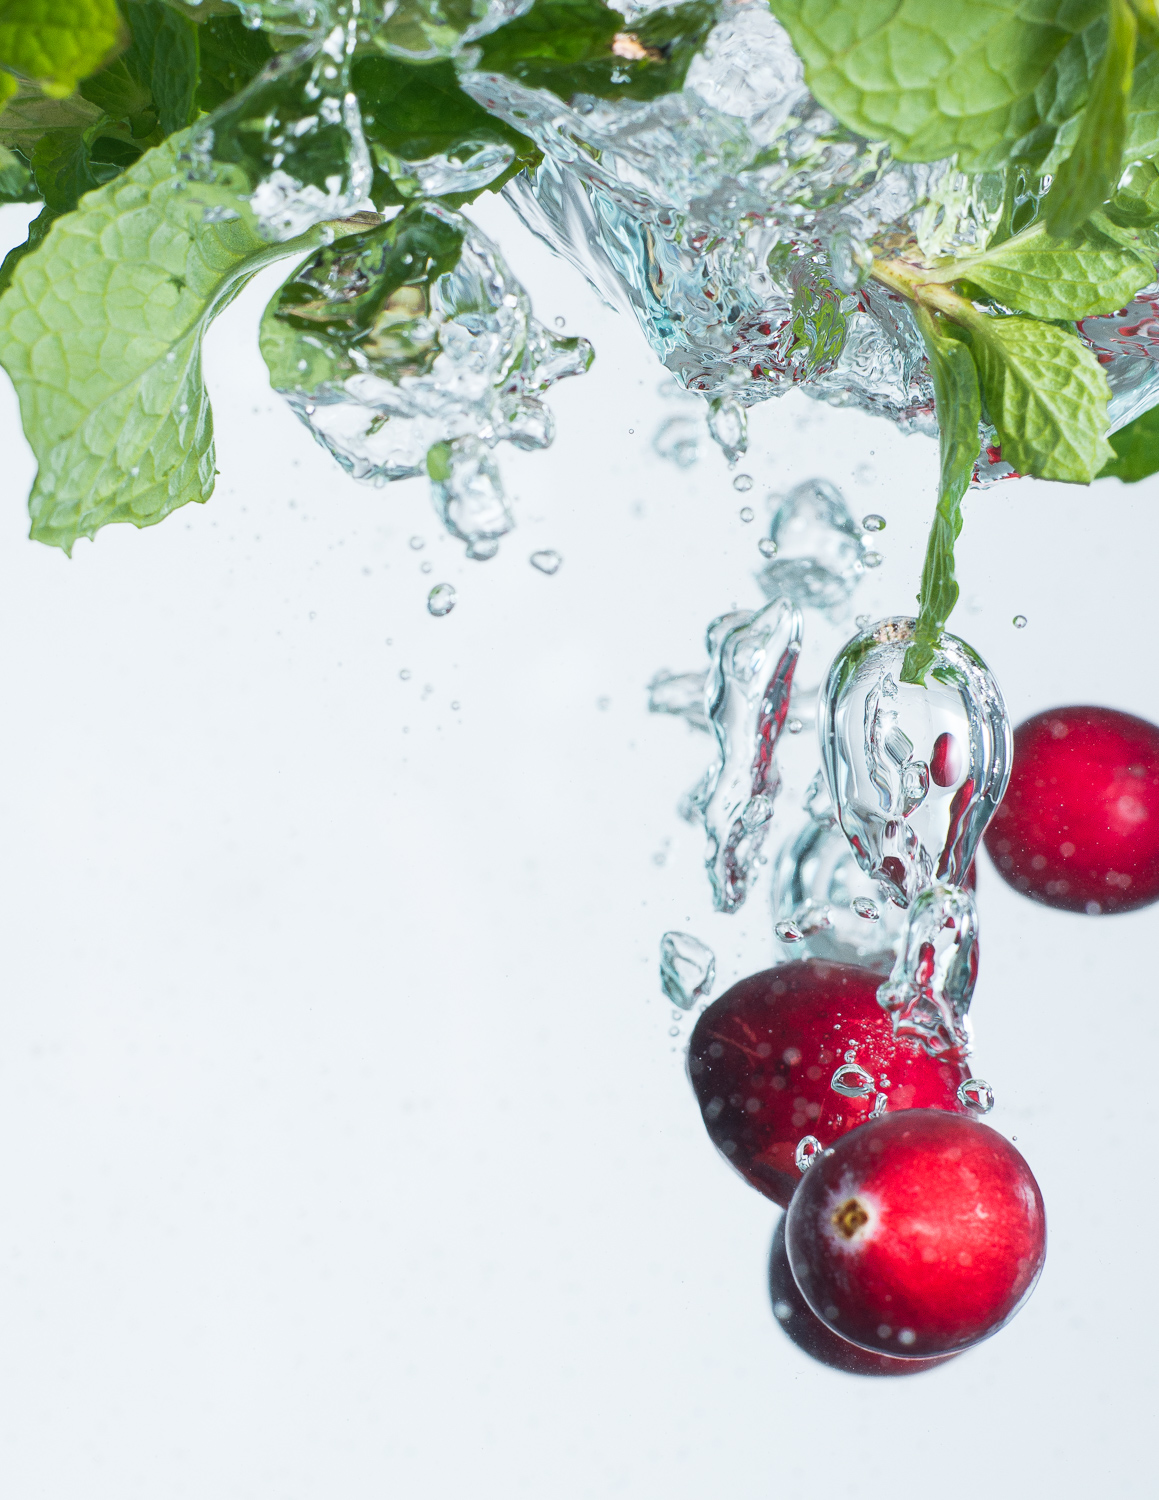 Cranberries and mint in water food photography